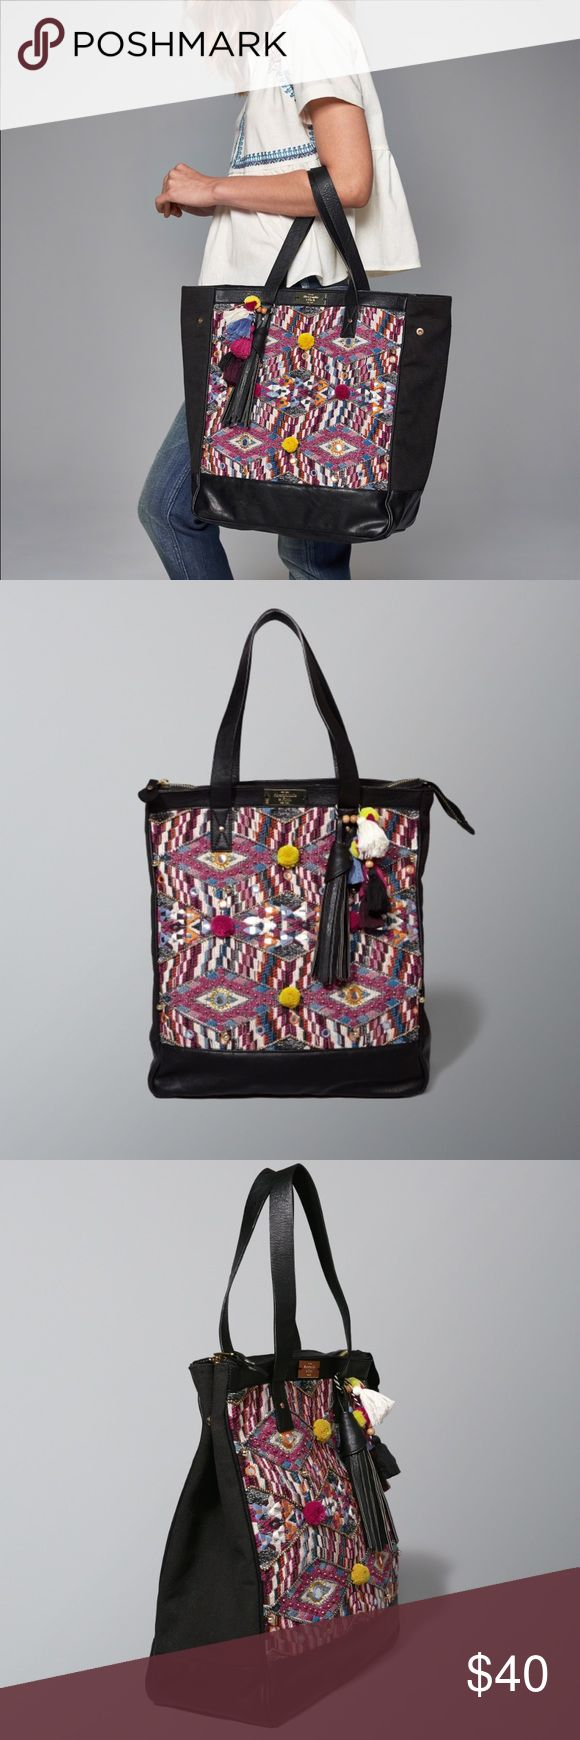 Woven Geometric Tote Bag Abercrombie and Fitch black woven tote bag with faux leather details. Colorful geometric woven design with pom poms, tiny gold balls and fringe charms add boho chic detail. ✨NWOT!✨ Abercrombie & Fitch Bags Totes